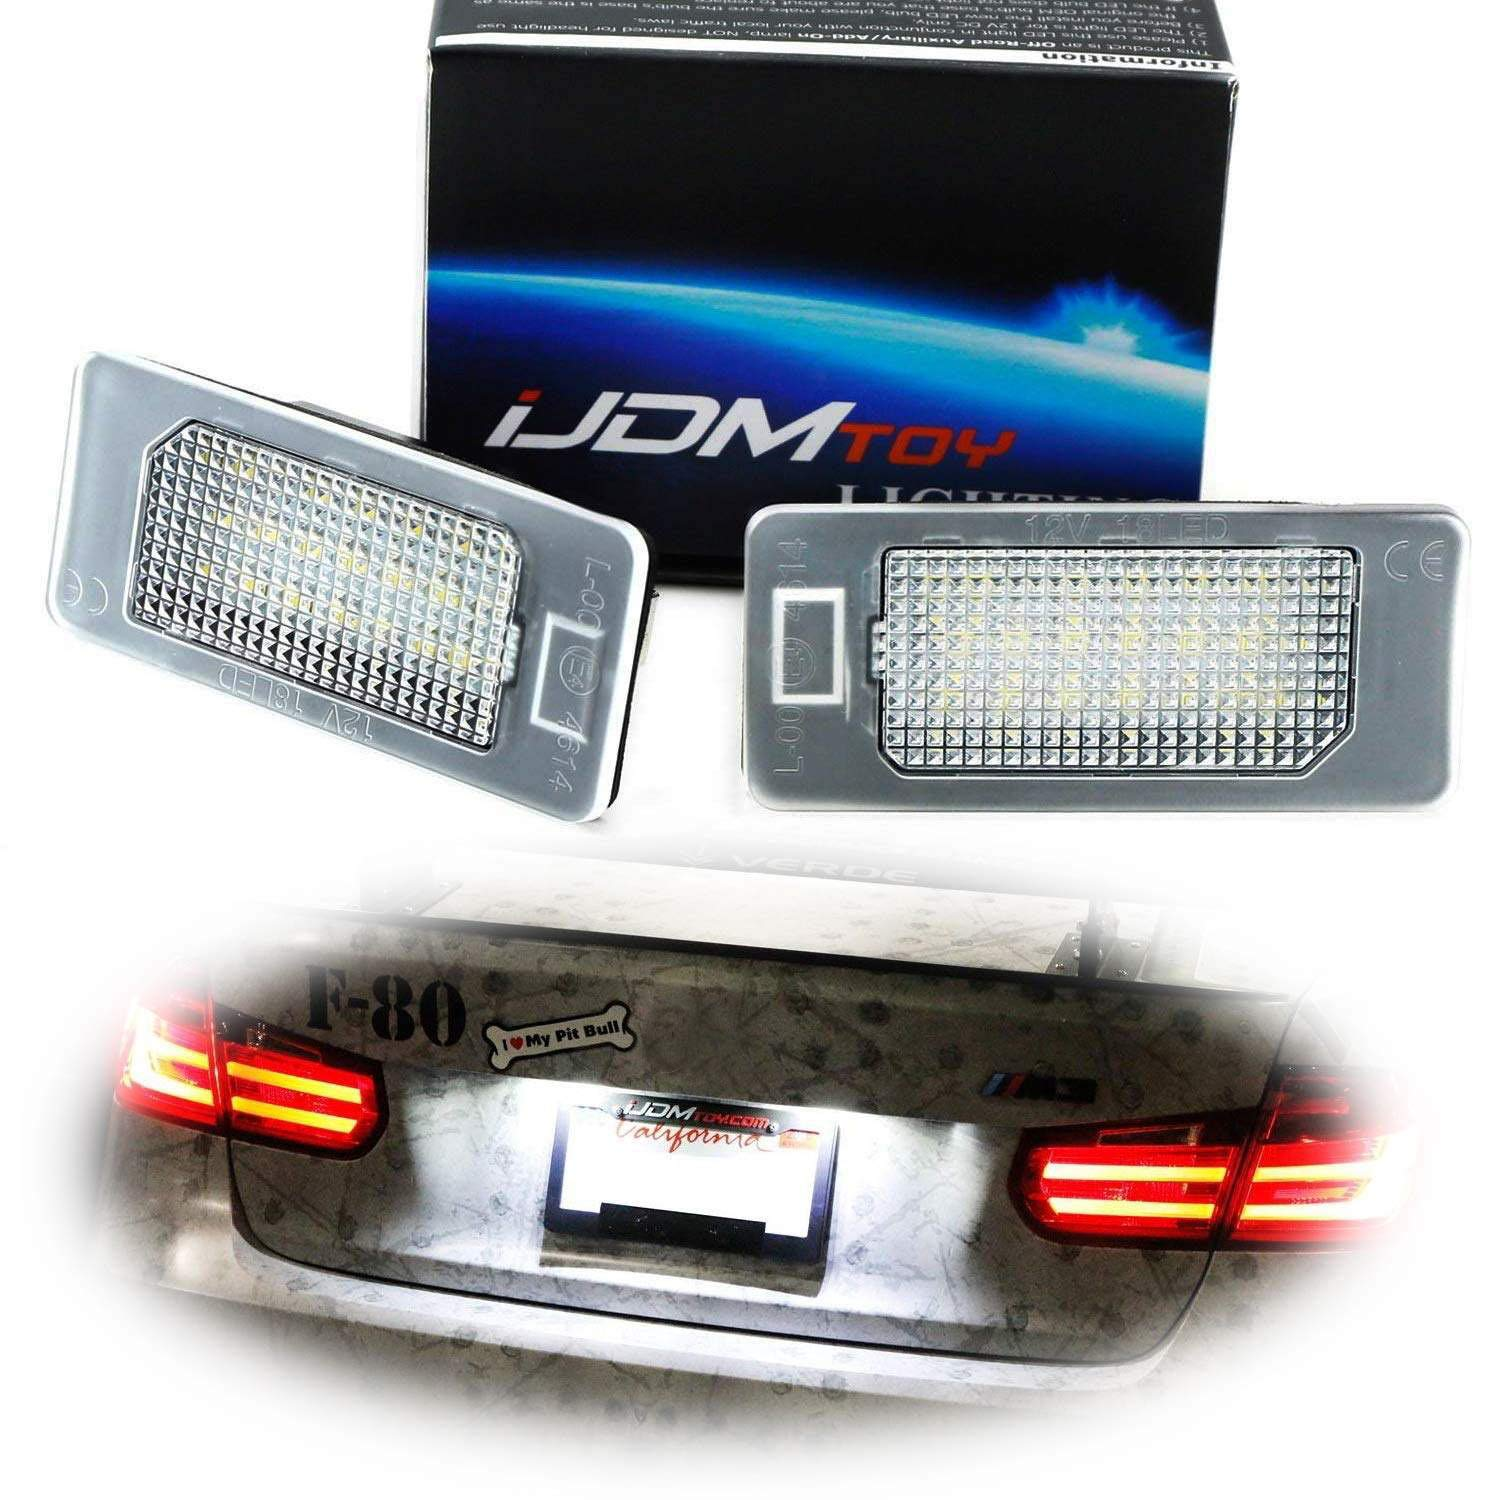 Full LED Step Courtesy Lights For BMW 1 2 3 4 5 7 Series X1 X3 X5 X6 etc iJDMTOY 2 OEM Replacement Powered by 18-SMD Xenon White LED Lights /& CAN-bus Error Free